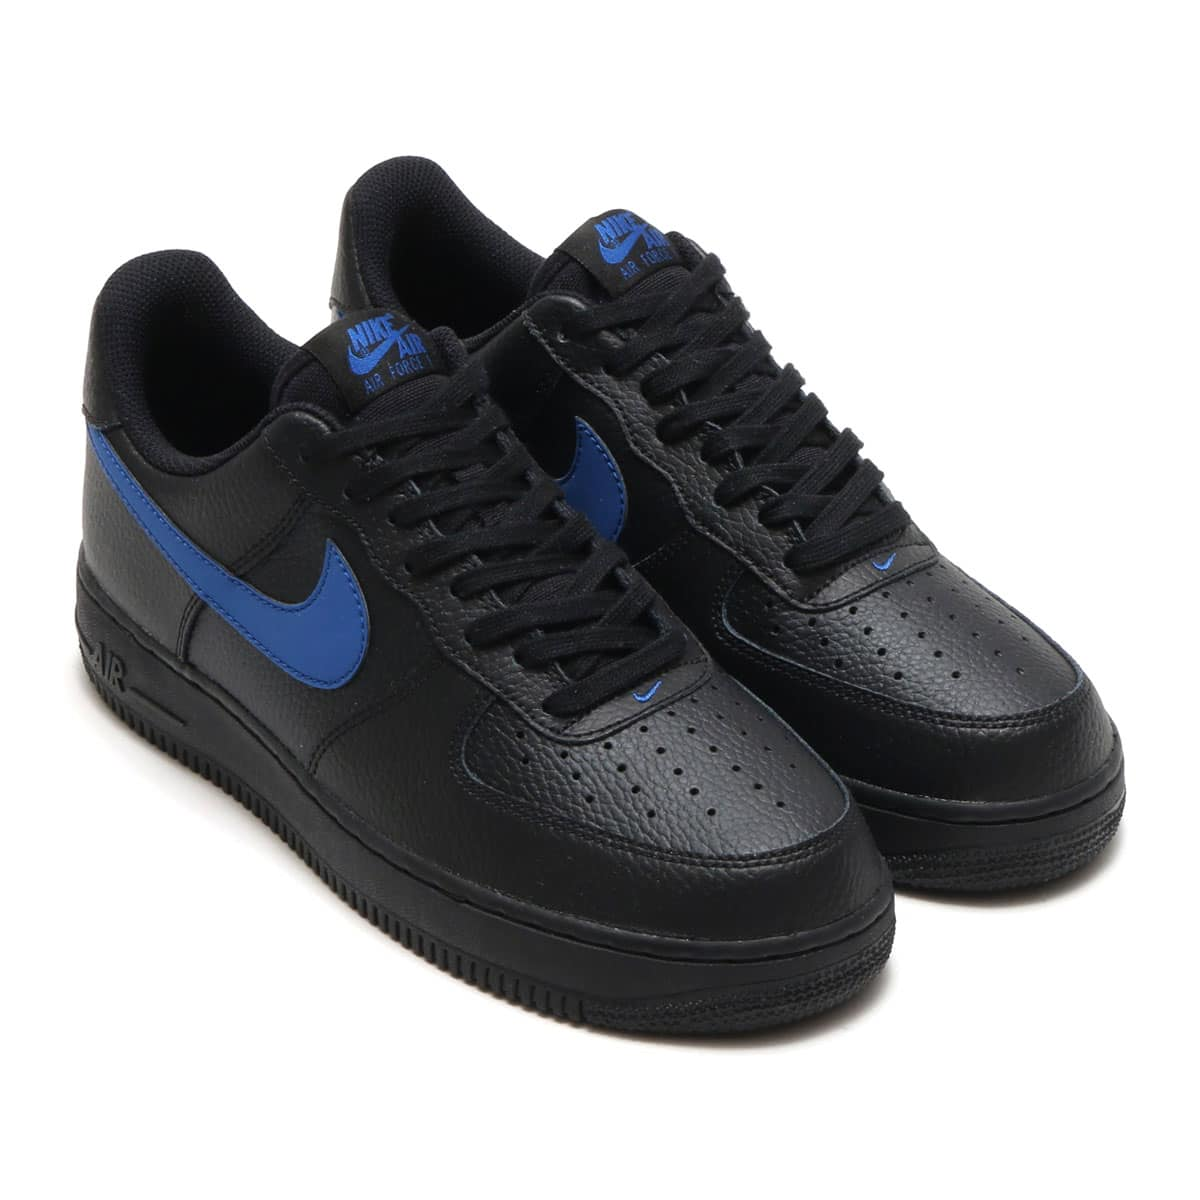 NIKE AIR FORCE 1 '07 BLACK/GYM BLUE_photo_large